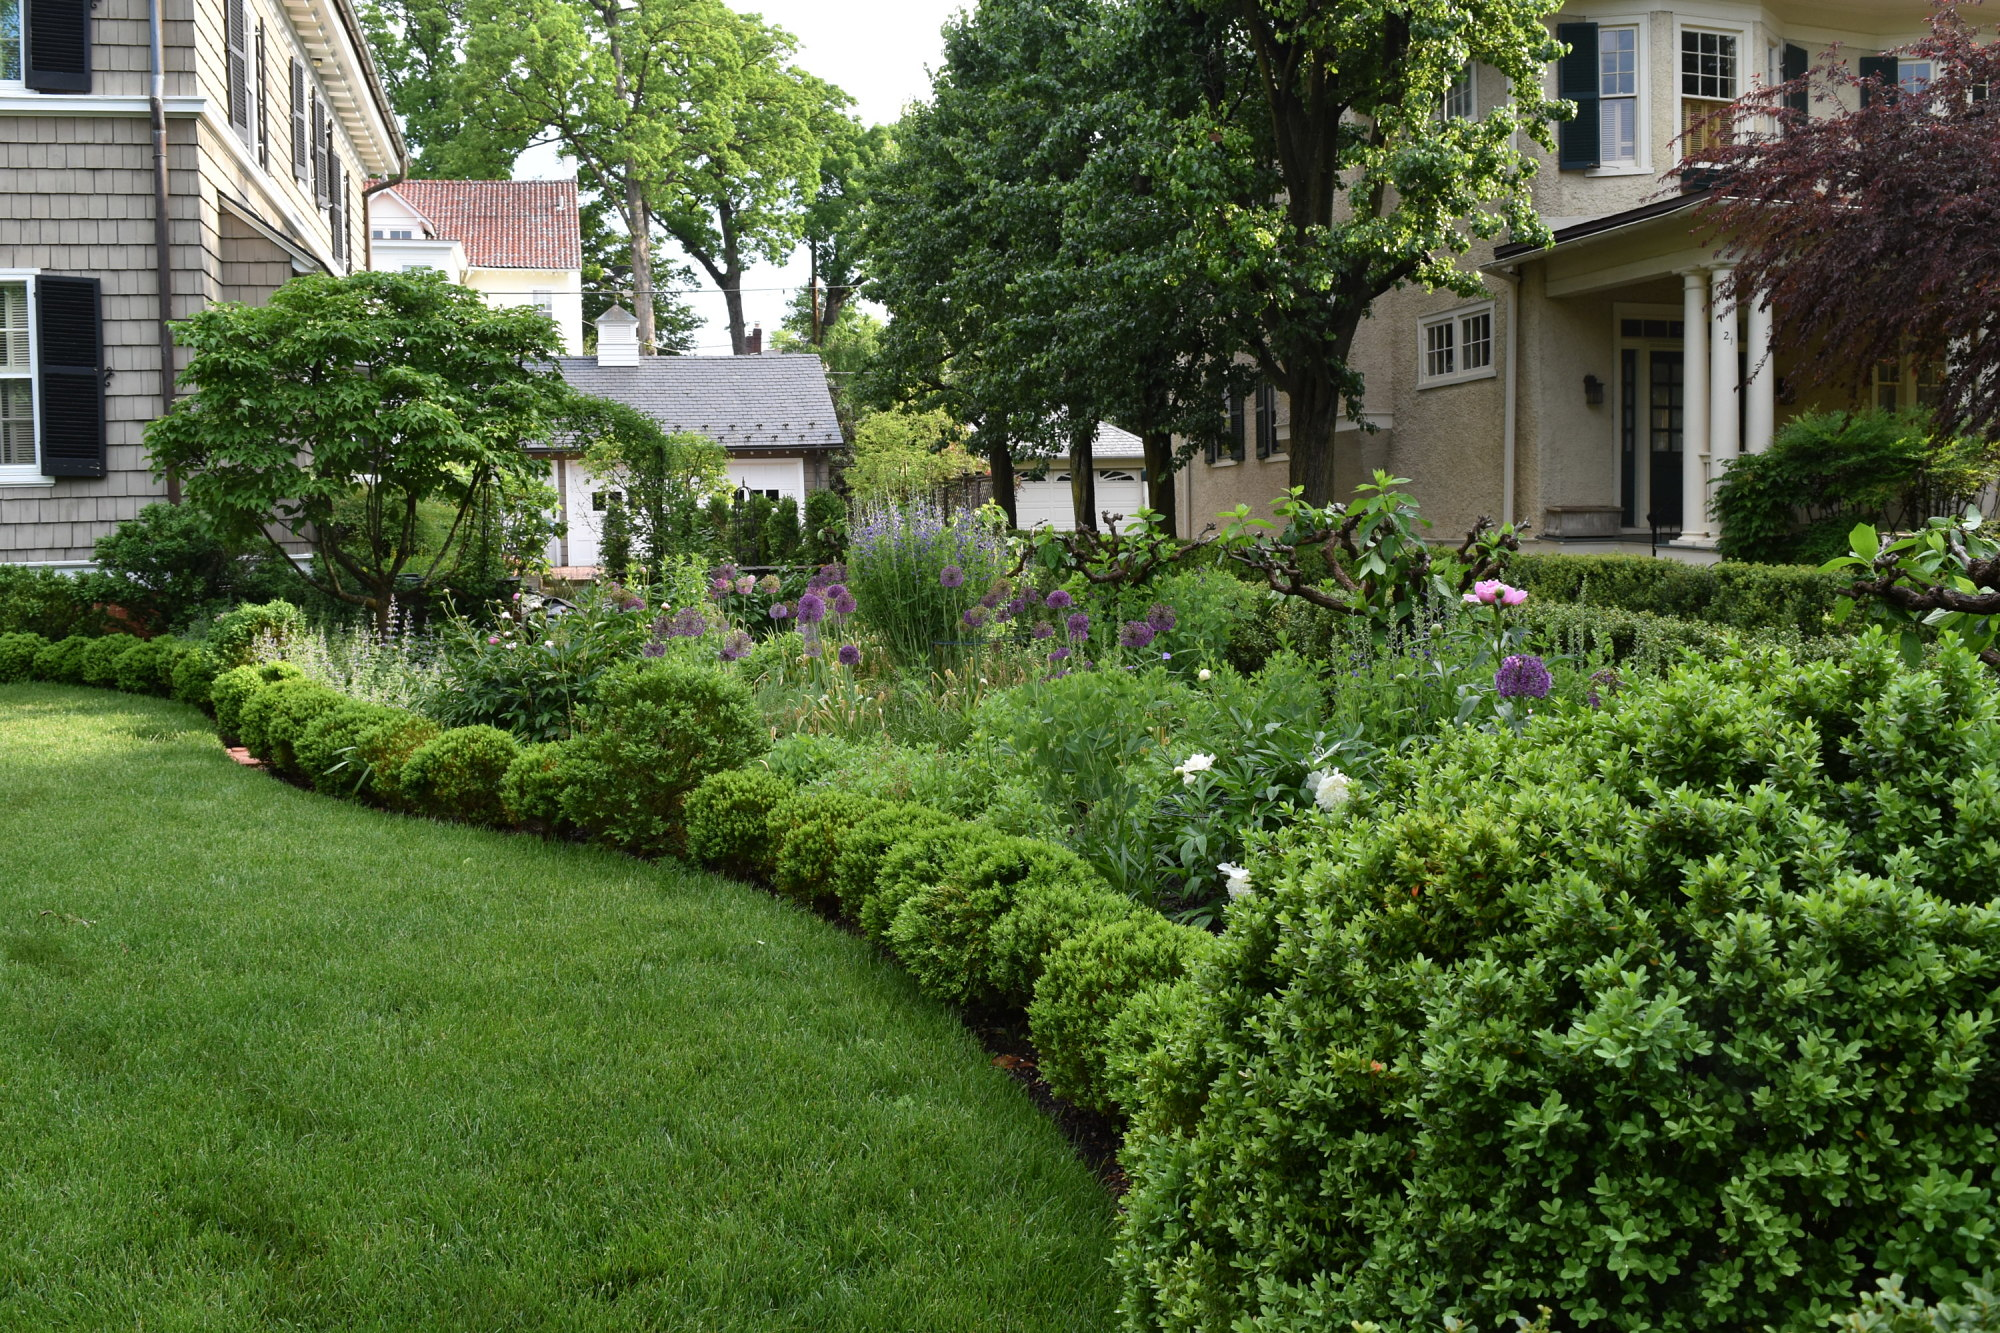 [Charles F.R. Ogilby House]: Perennial border in the front yard in spring.